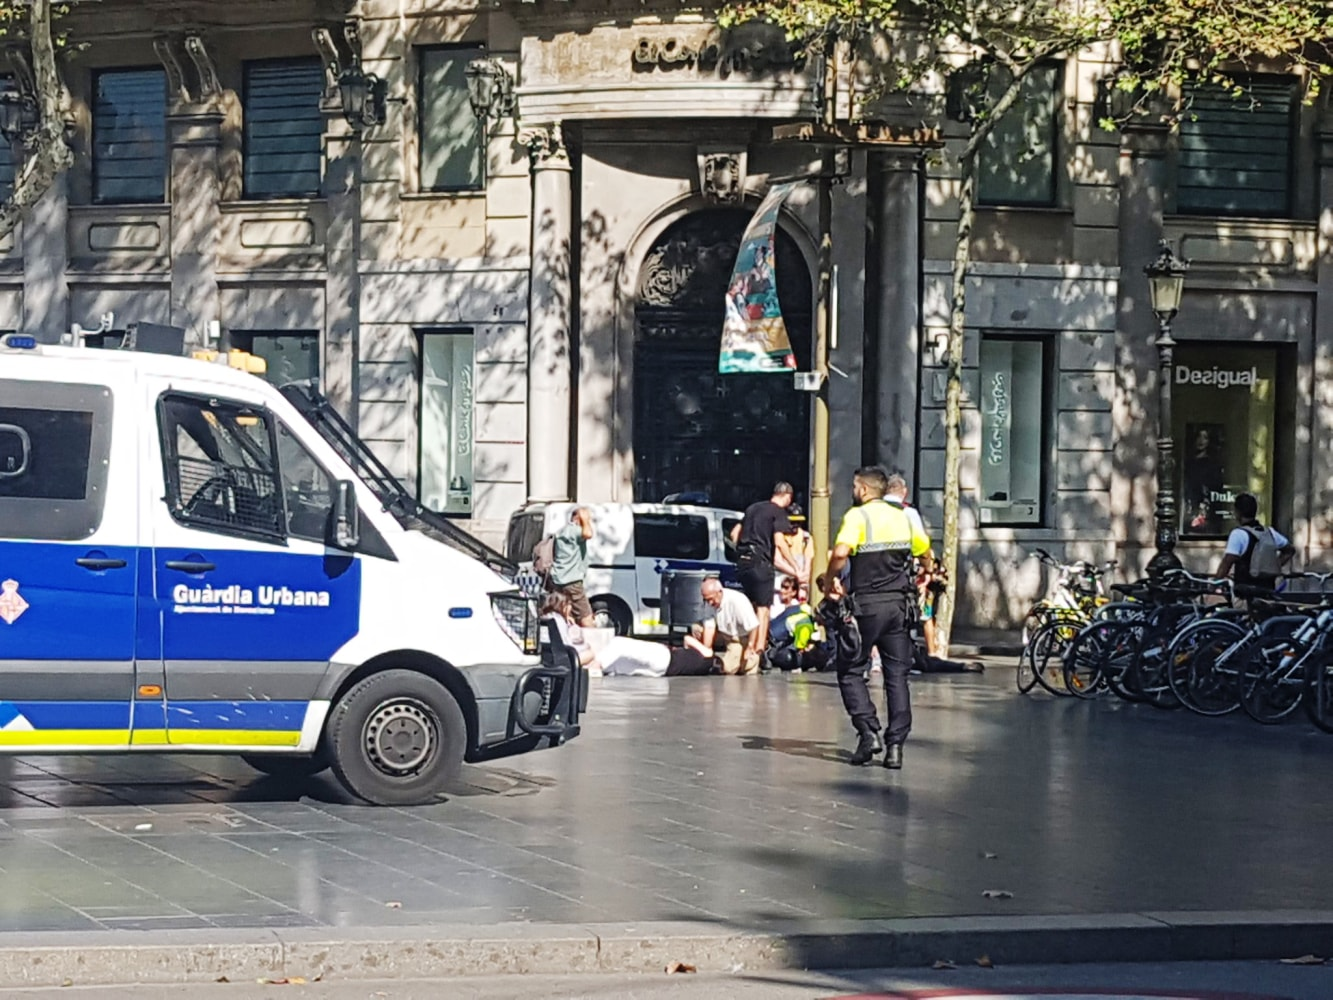 Claim: CIA 'Warned Barcelona Police' About Possible Las Ramblas Attack